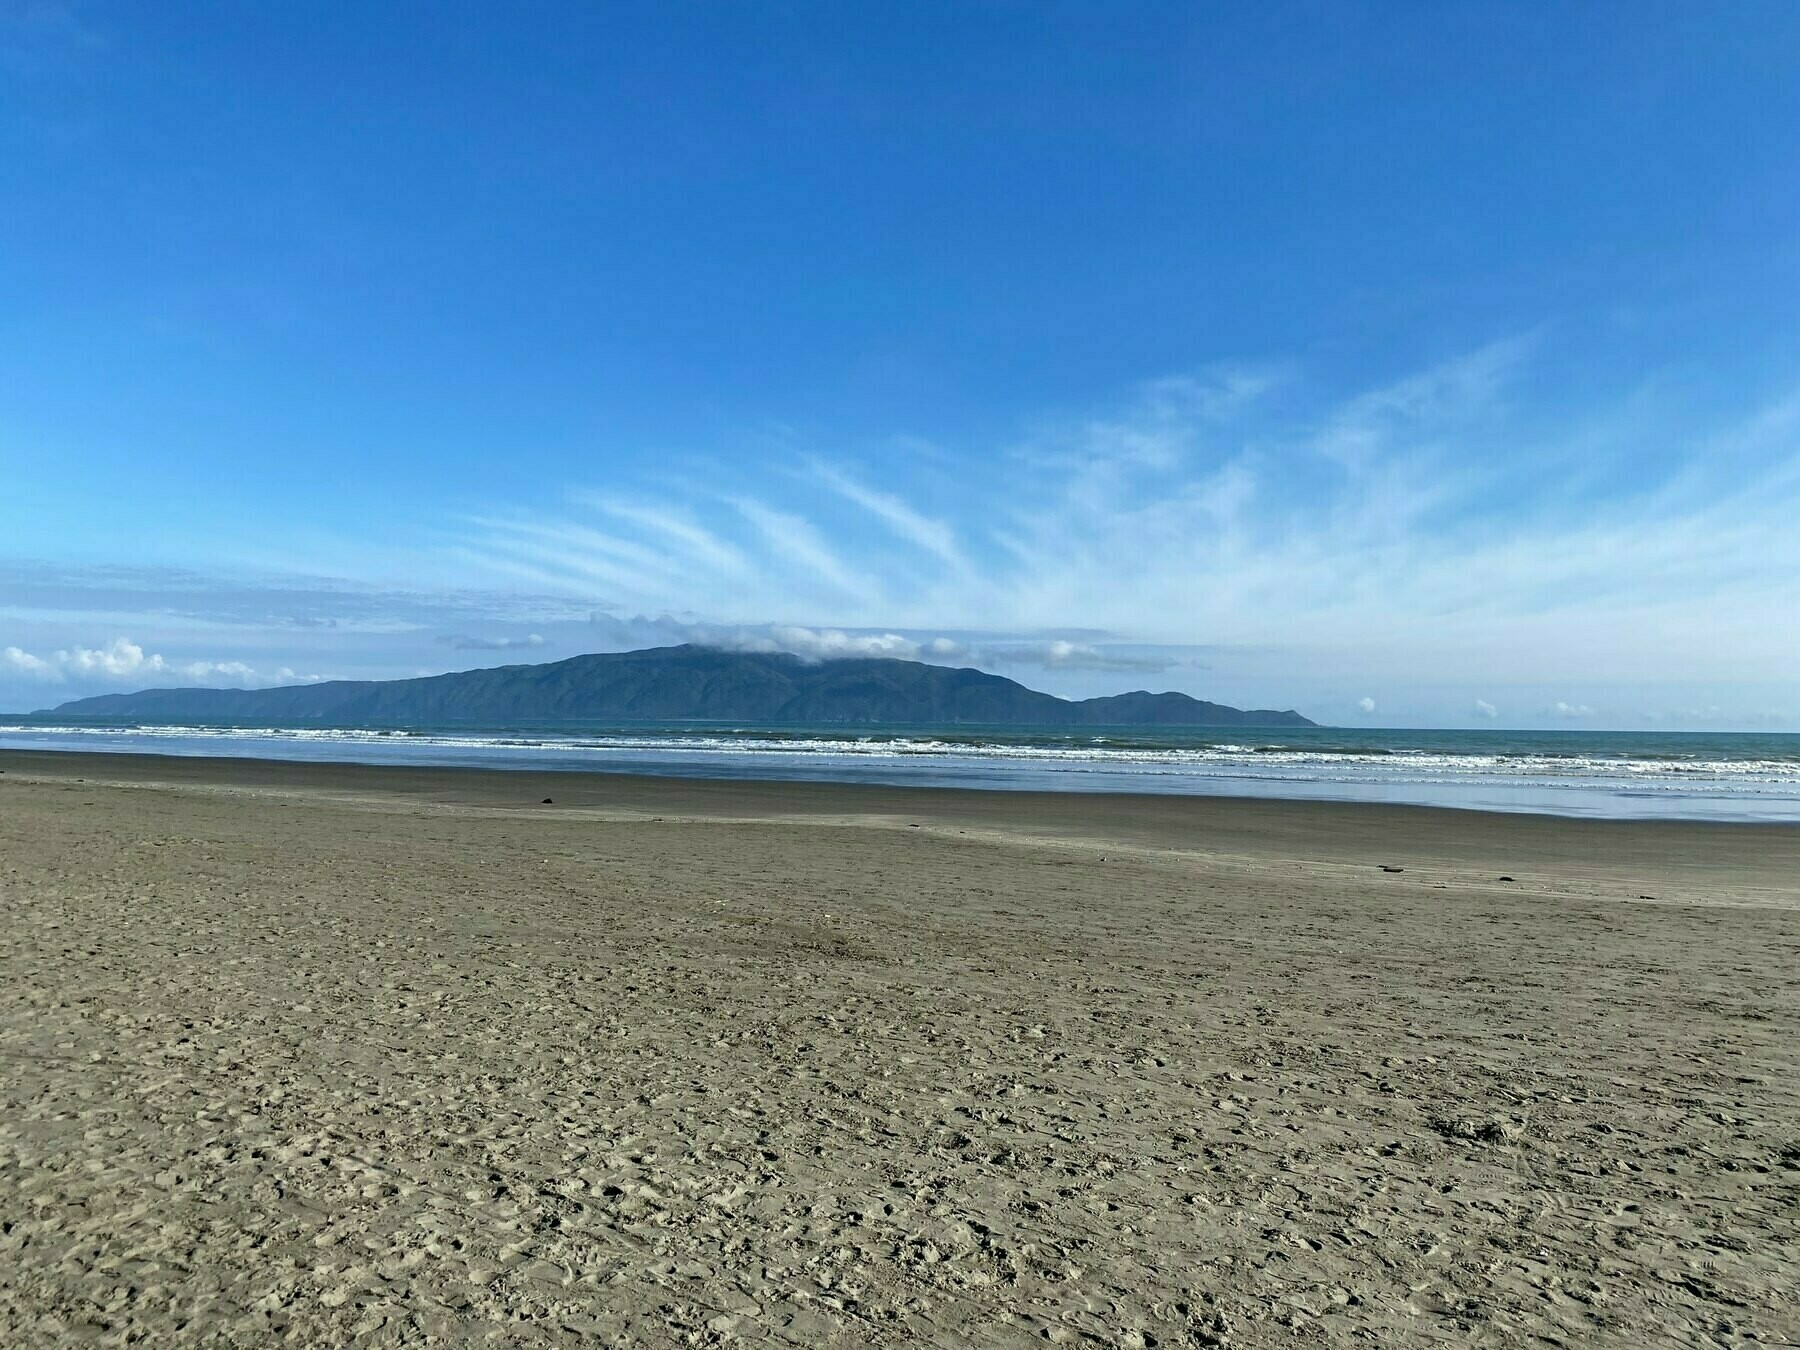 Looking across a beach and sea to a large island.